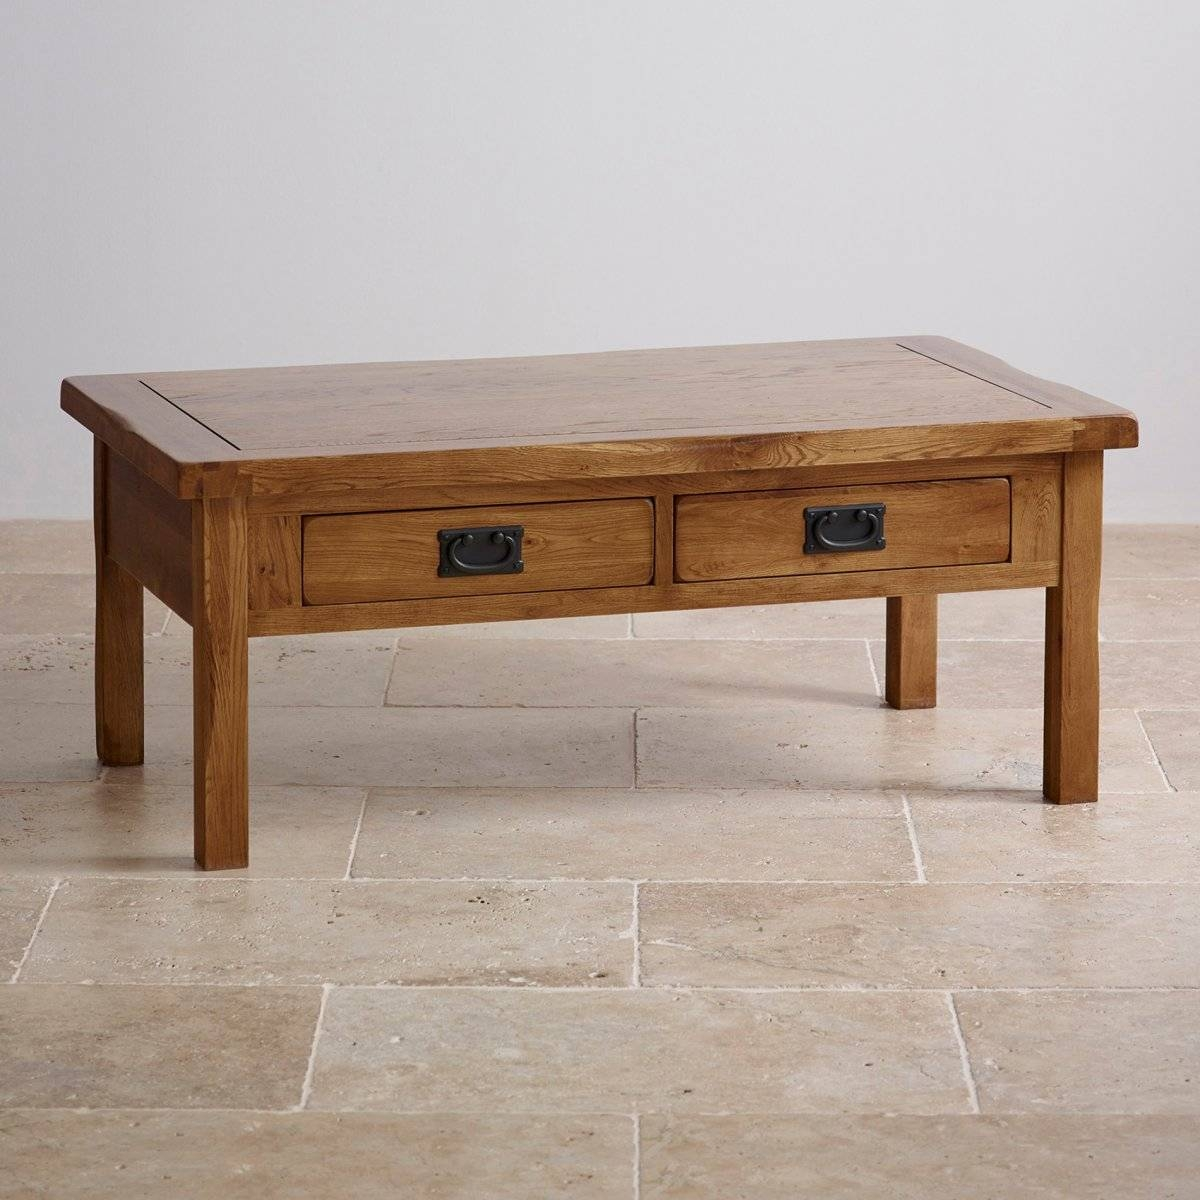 Original Rustic 4 Drawer Coffee Table In Solid Oak within Oak Storage Coffee Tables (Image 11 of 15)